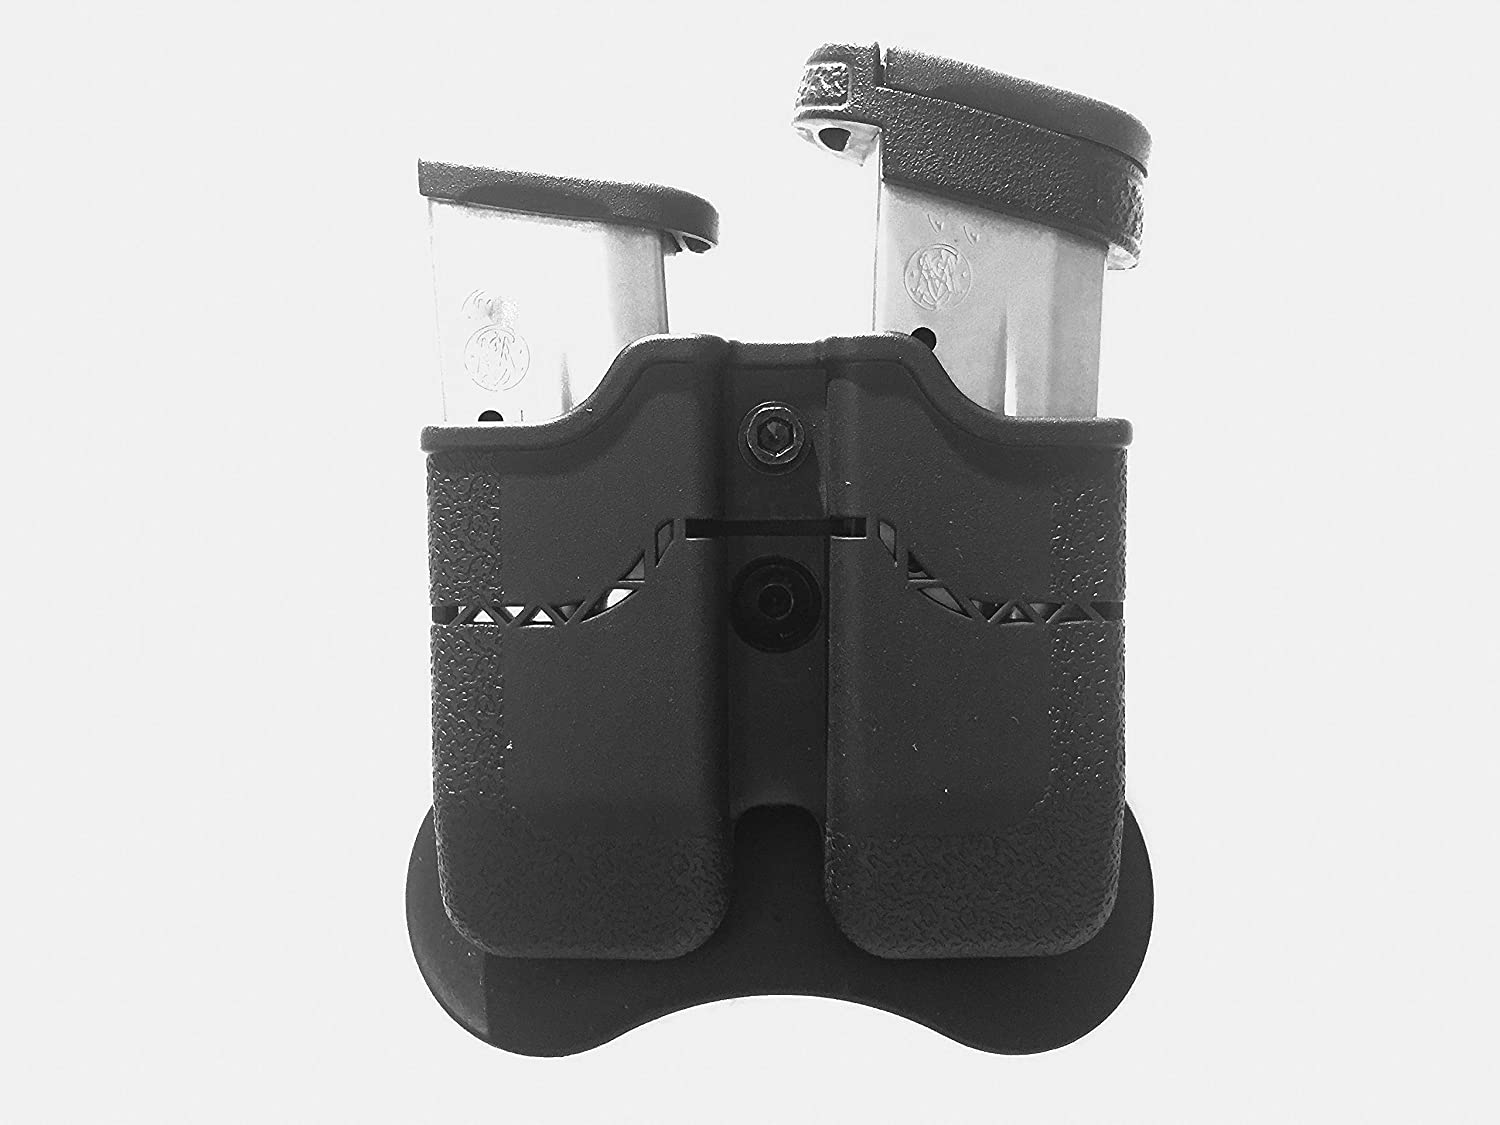 Double Magazine Pouch for M/&P Shield 9mm or 40 Caliber 7 OR 8 ROUND MAGS